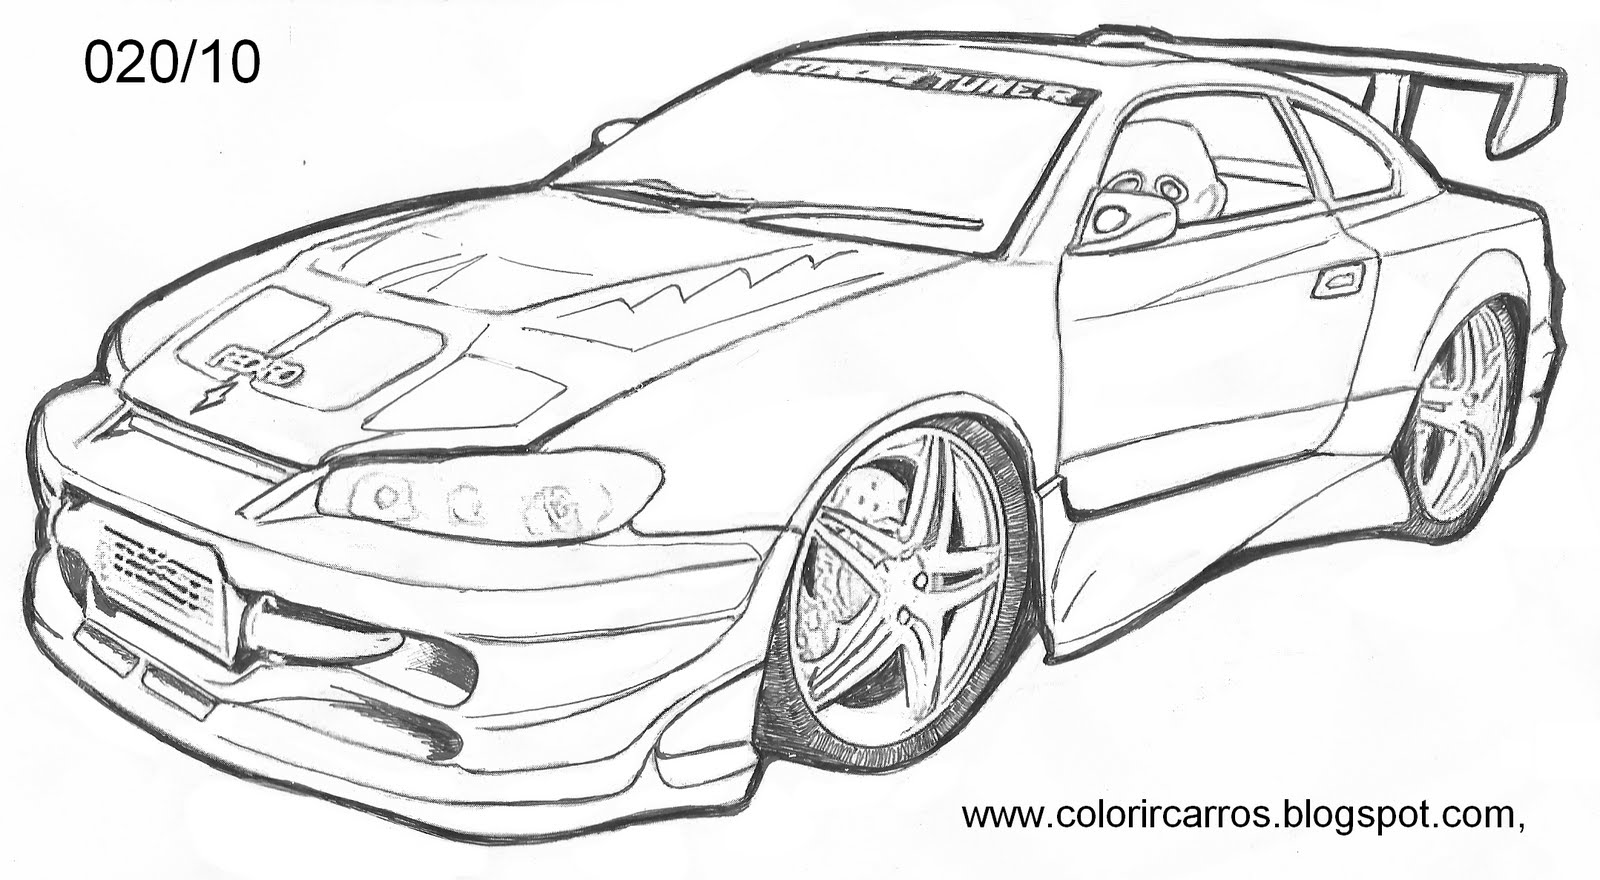 Camaro 2012 Coloring Page http://printablecolouringpages.co.uk/?s=carros%20camaro